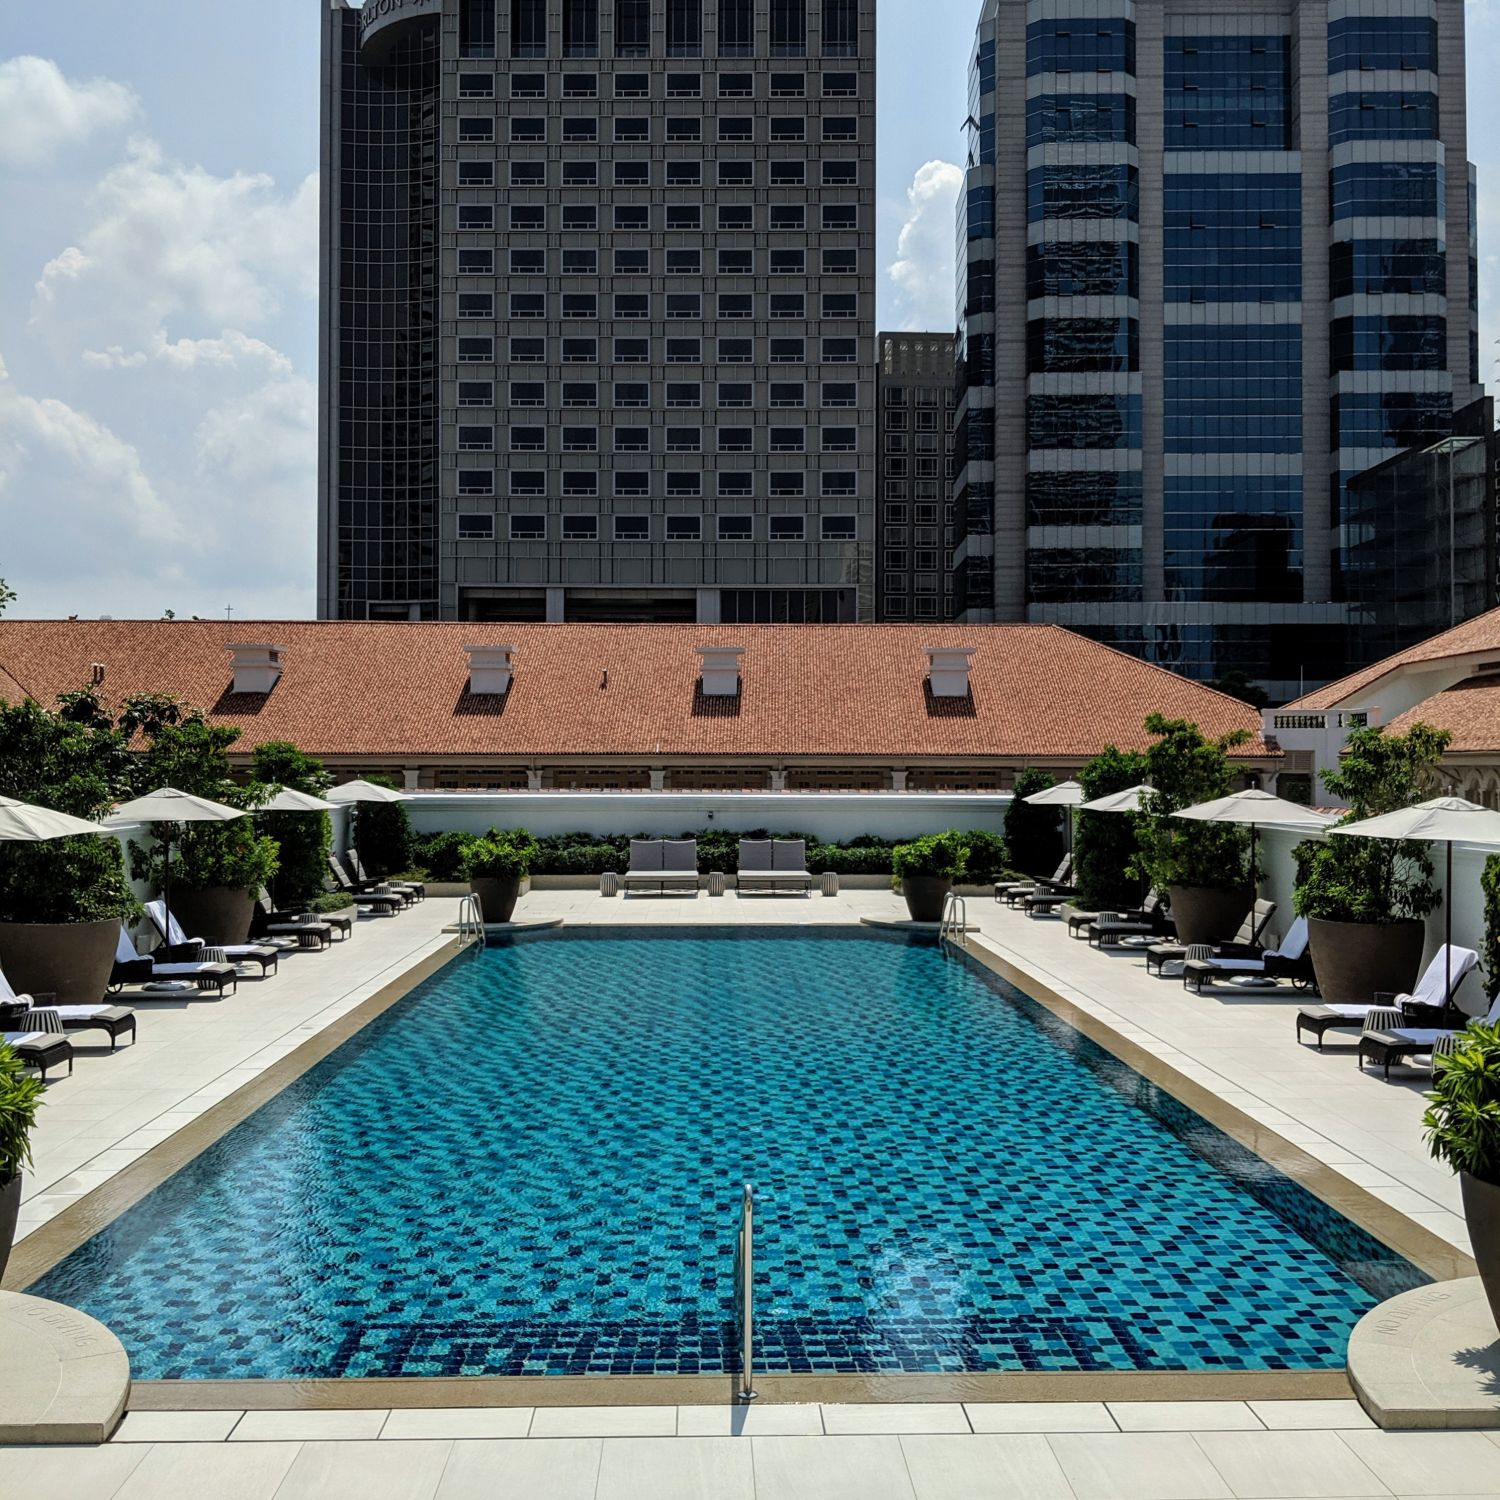 raffles hotel singapore swimming pool